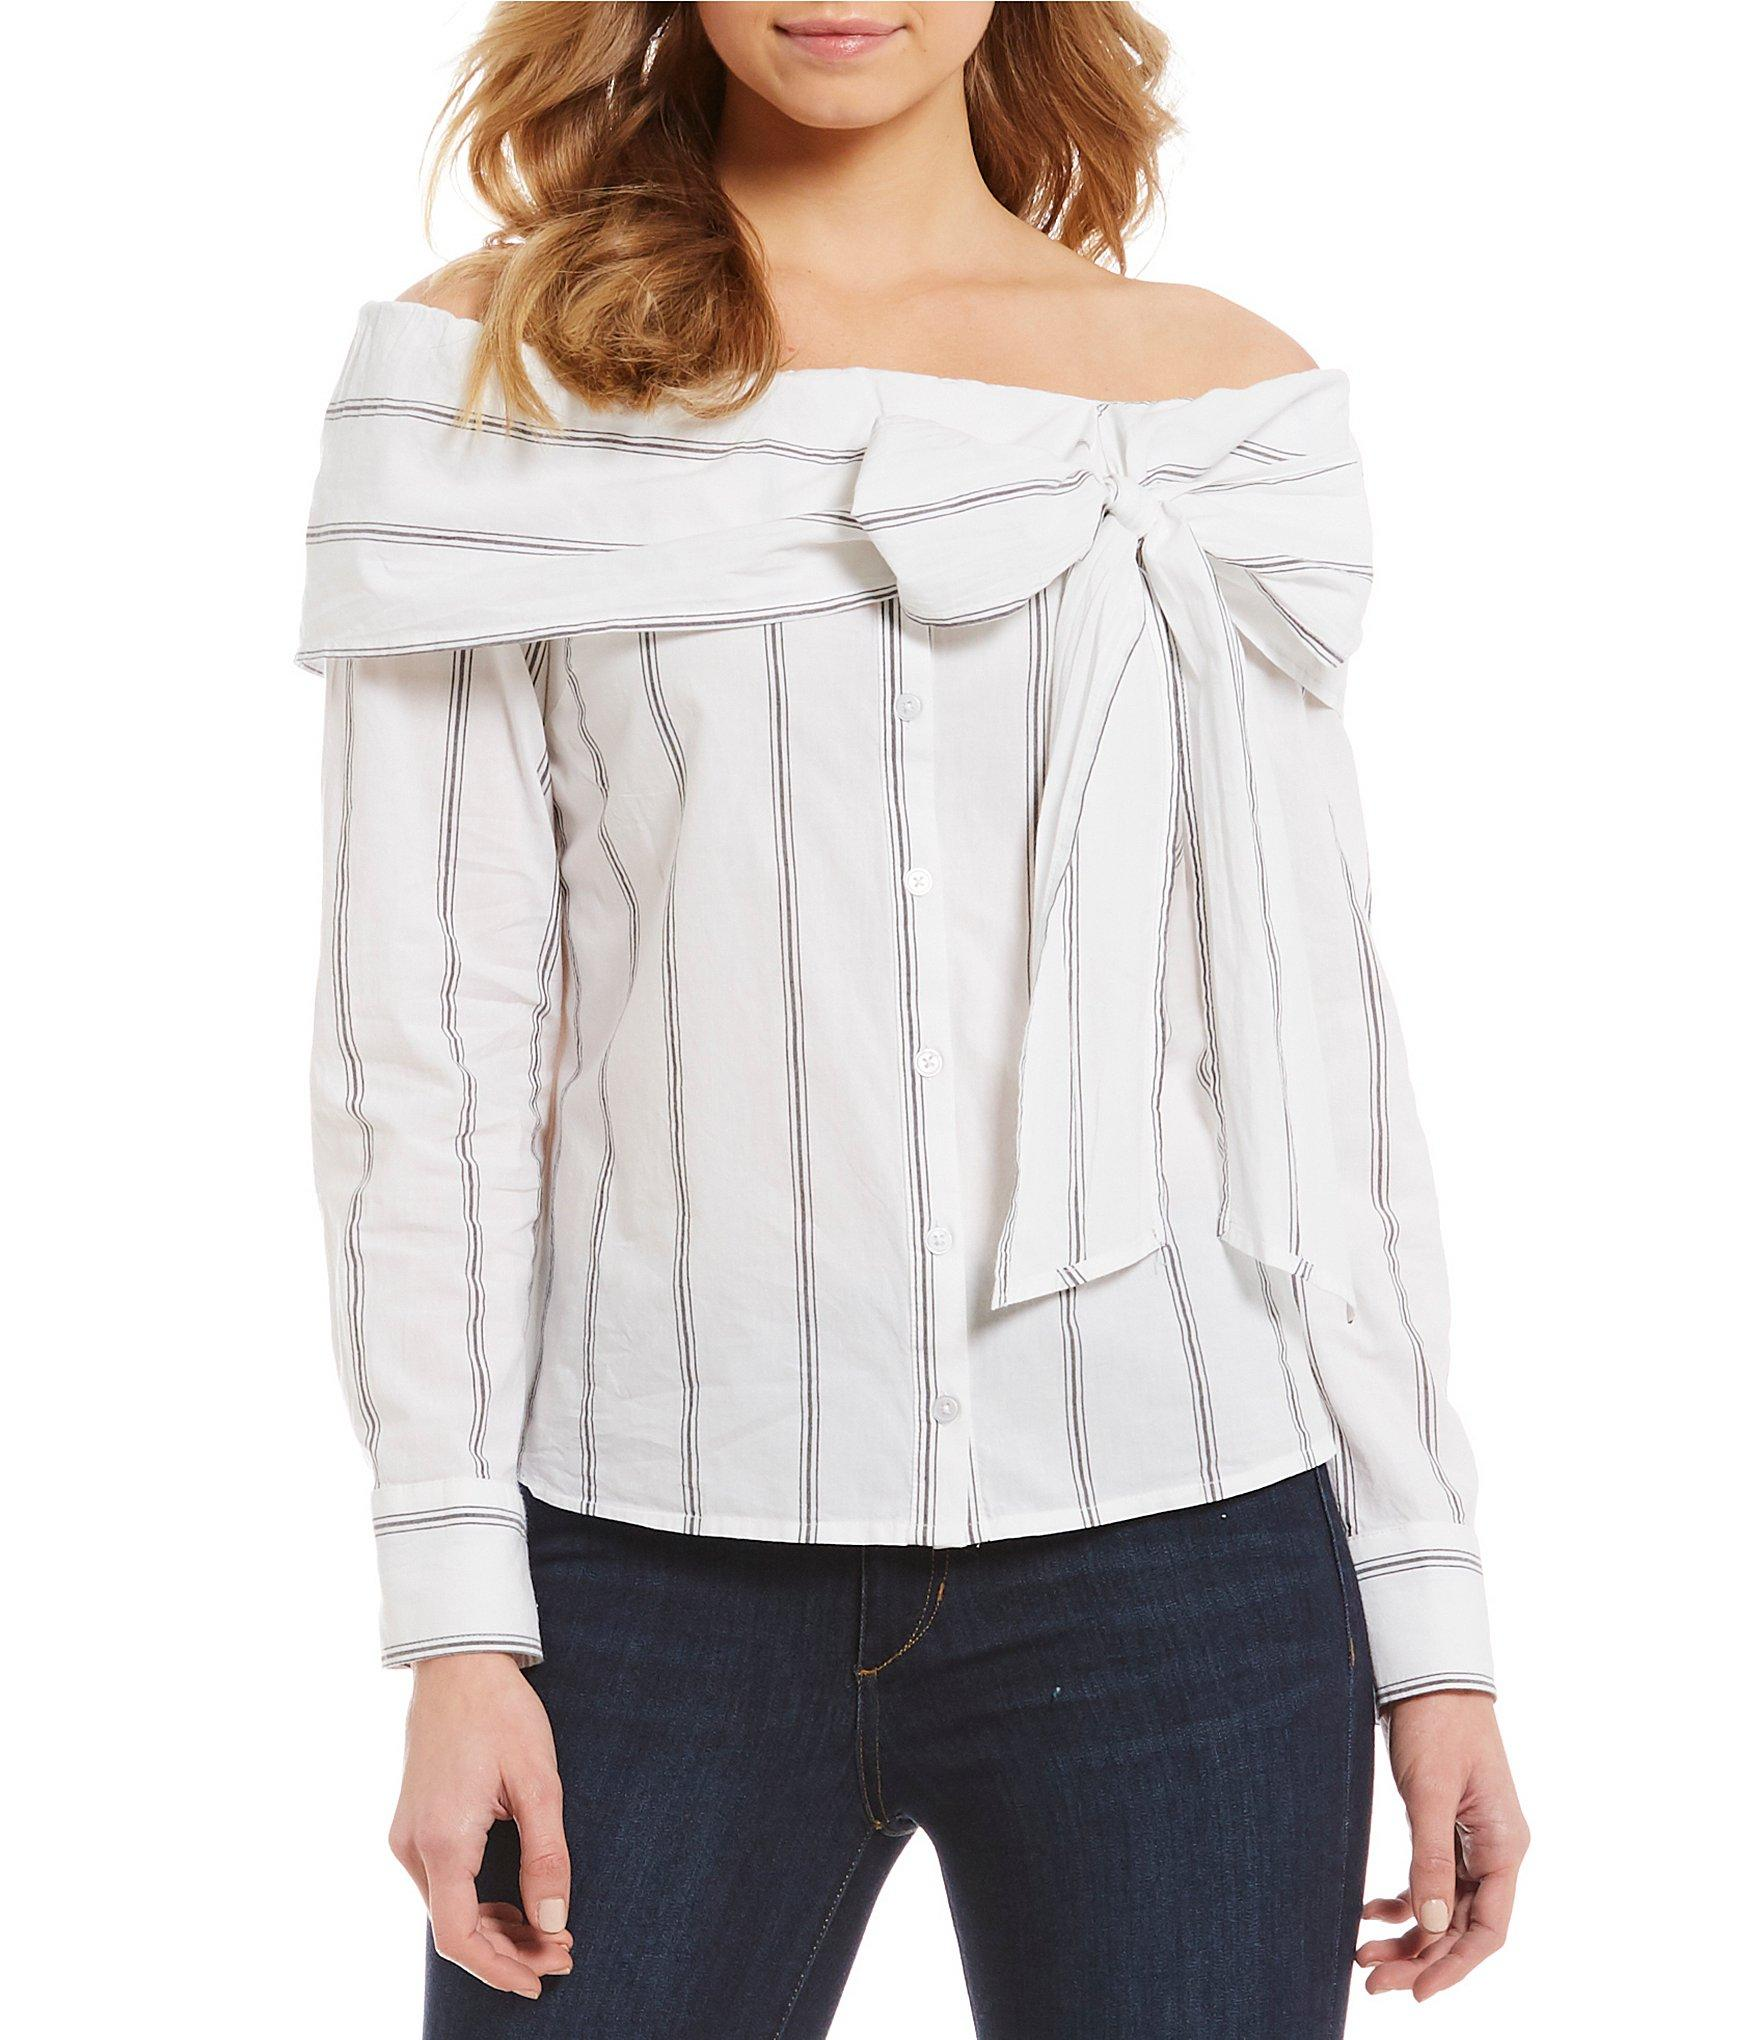 30cf258bfc8bff Lyst - Ella Moss Rosemary Woven Off-the-shoulder Top in White